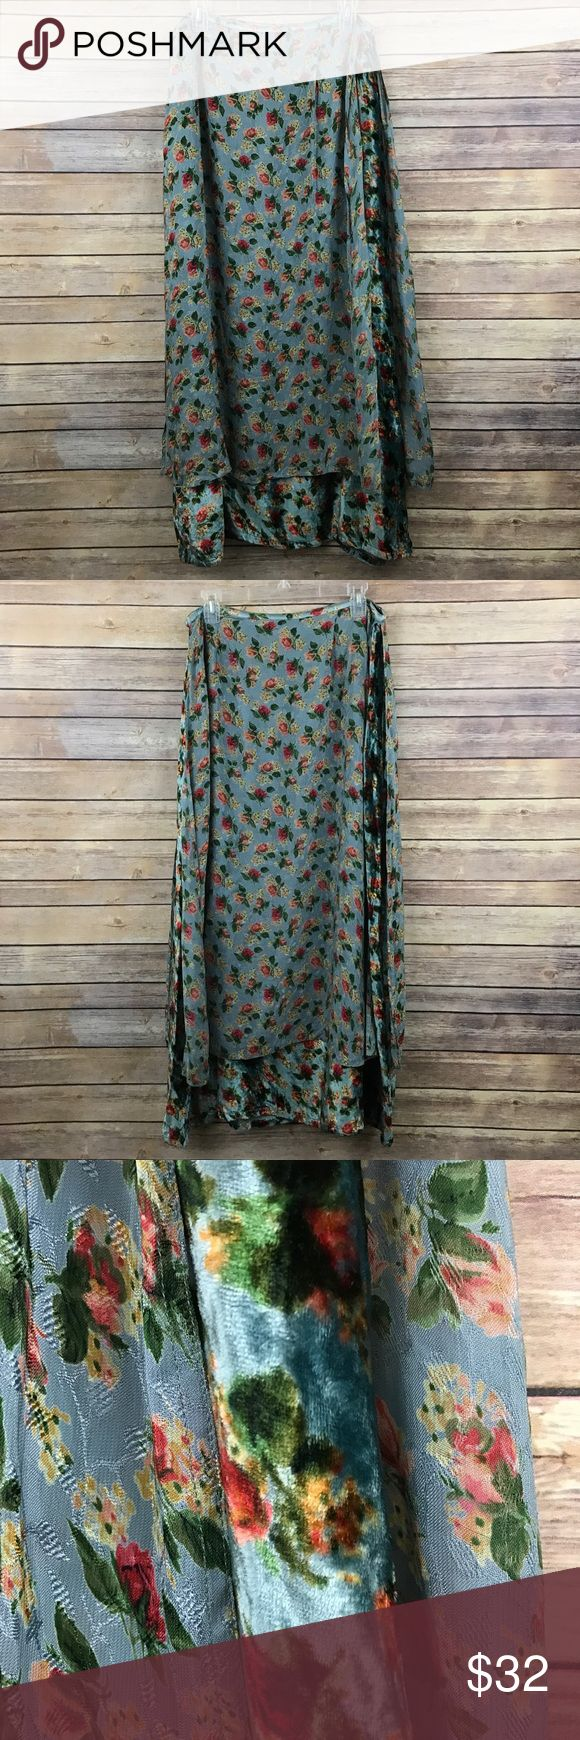 "April Cornell boho Floral midi skirt Sz L 467 April Cornell multicolored Floral Midi Skirt, Women's Sz Large front and back velvet panels over a chiffon skirt.    Measurements:  Waist: 16"" flat across  Length: 38"" April Cornell Skirts Midi"